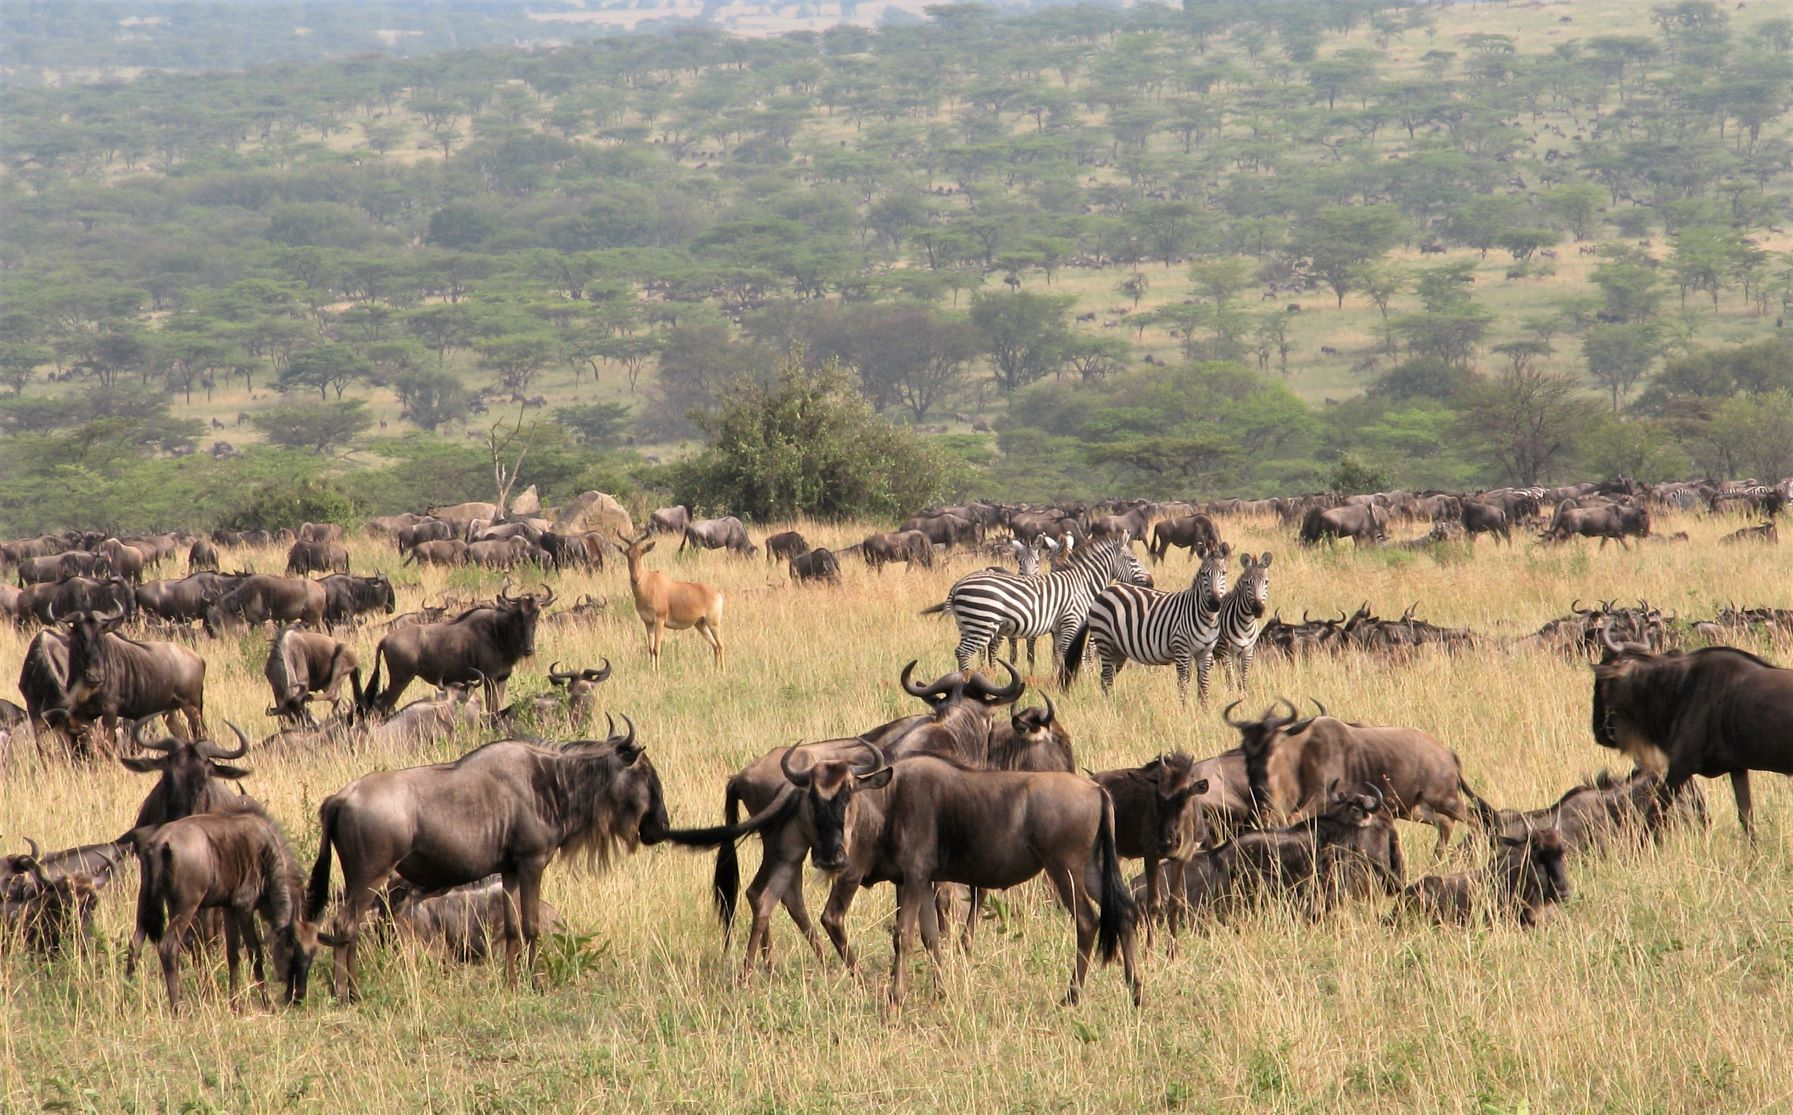 Hundreds of thousands of wildebeest (), plus tens of thousands of common zebra and other grazing antelope migrate seasonally across Serengeti National Park in Tanzania to find fresh grasses.